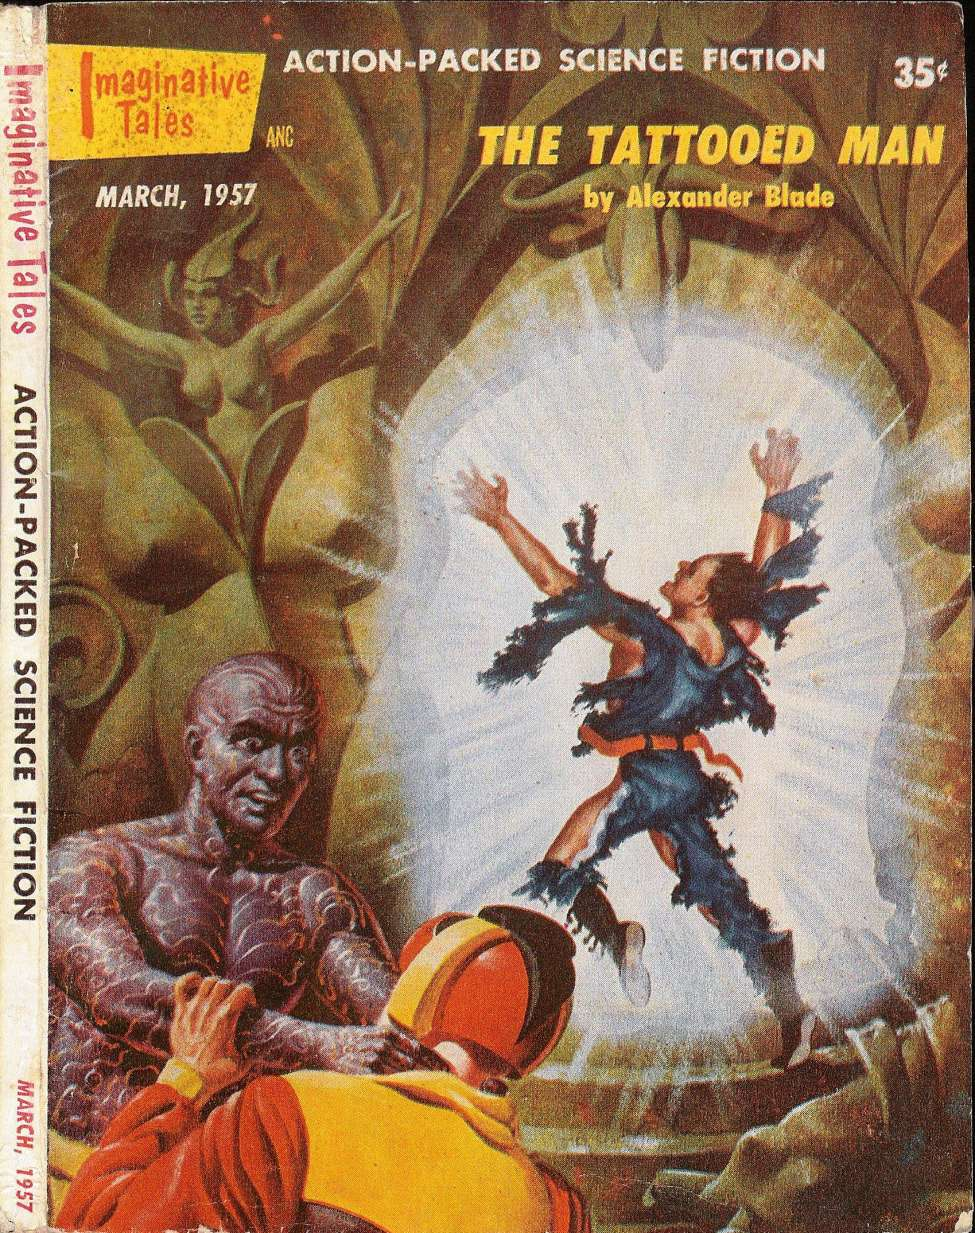 Comic Book Cover For Imaginative Tales v04 02 - The Tattooed Man - Alexander Blade